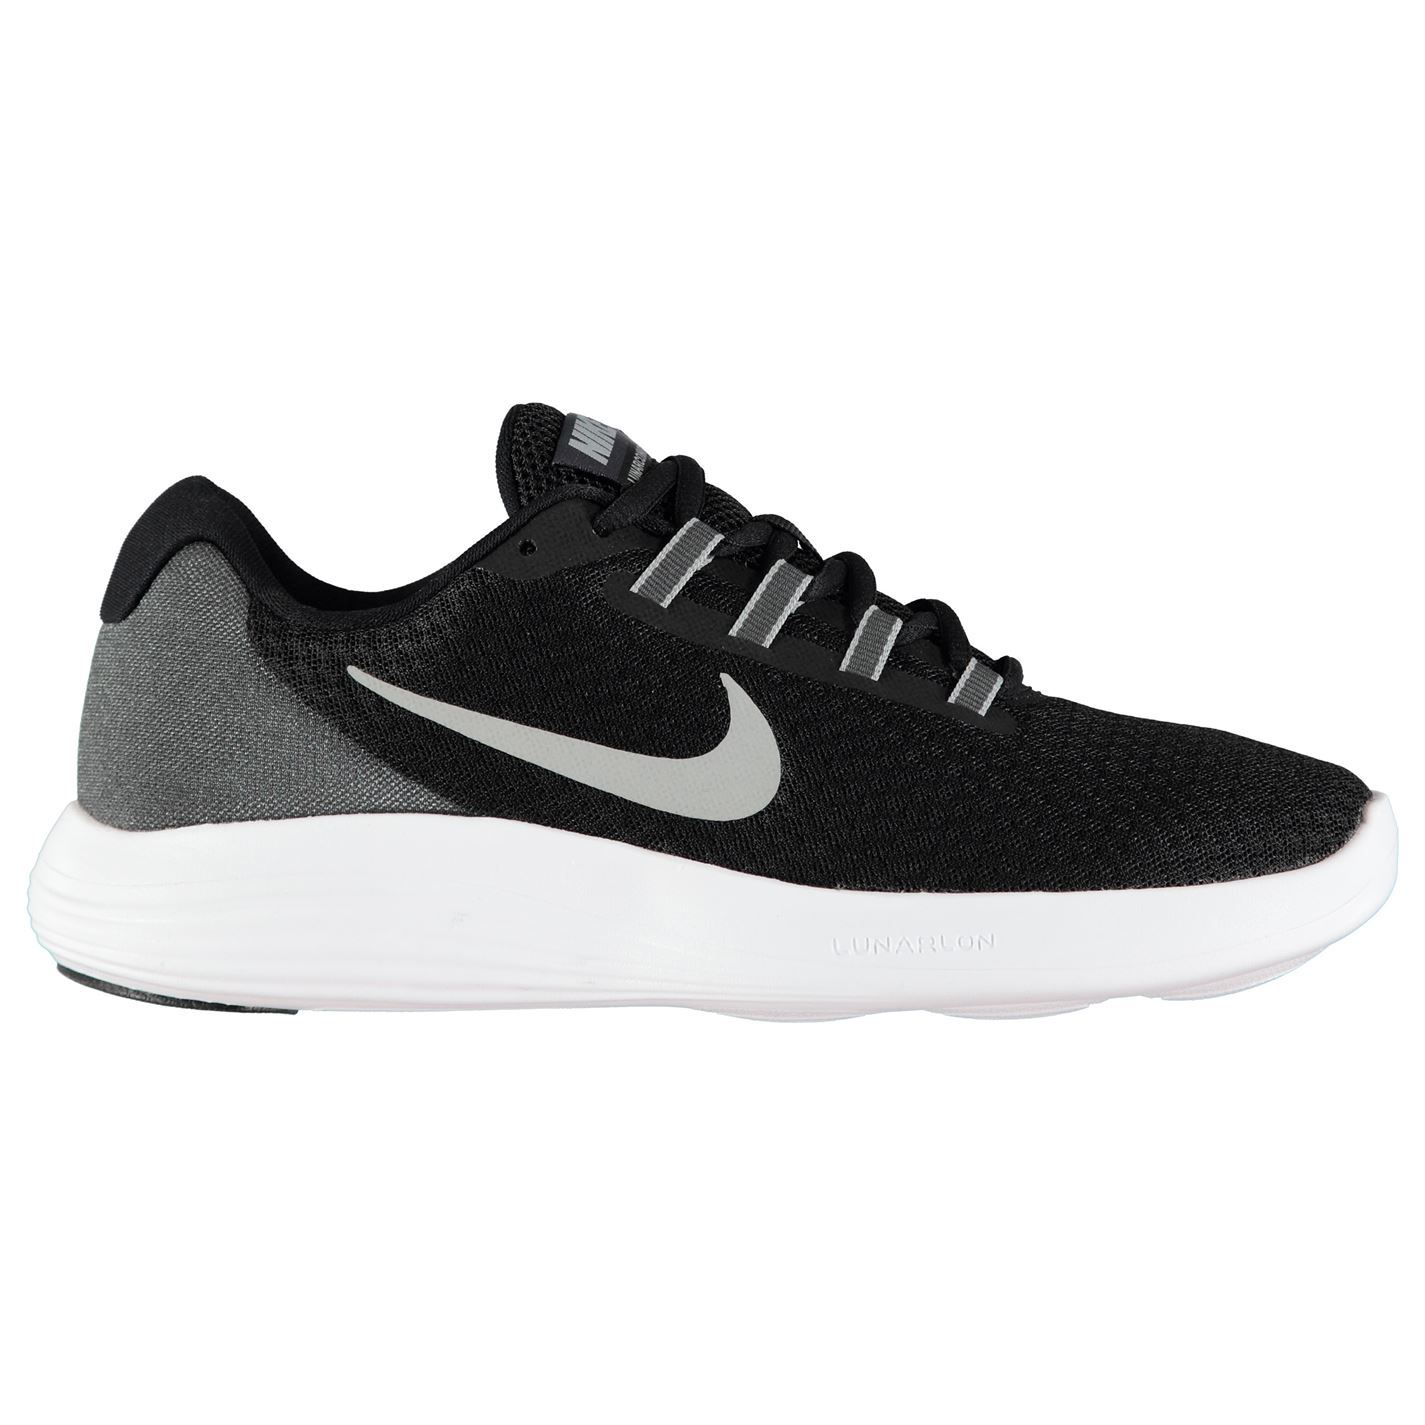 Nike Lunar Converge Trainers Mens Black/Silver Athletic Sneakers Shoes